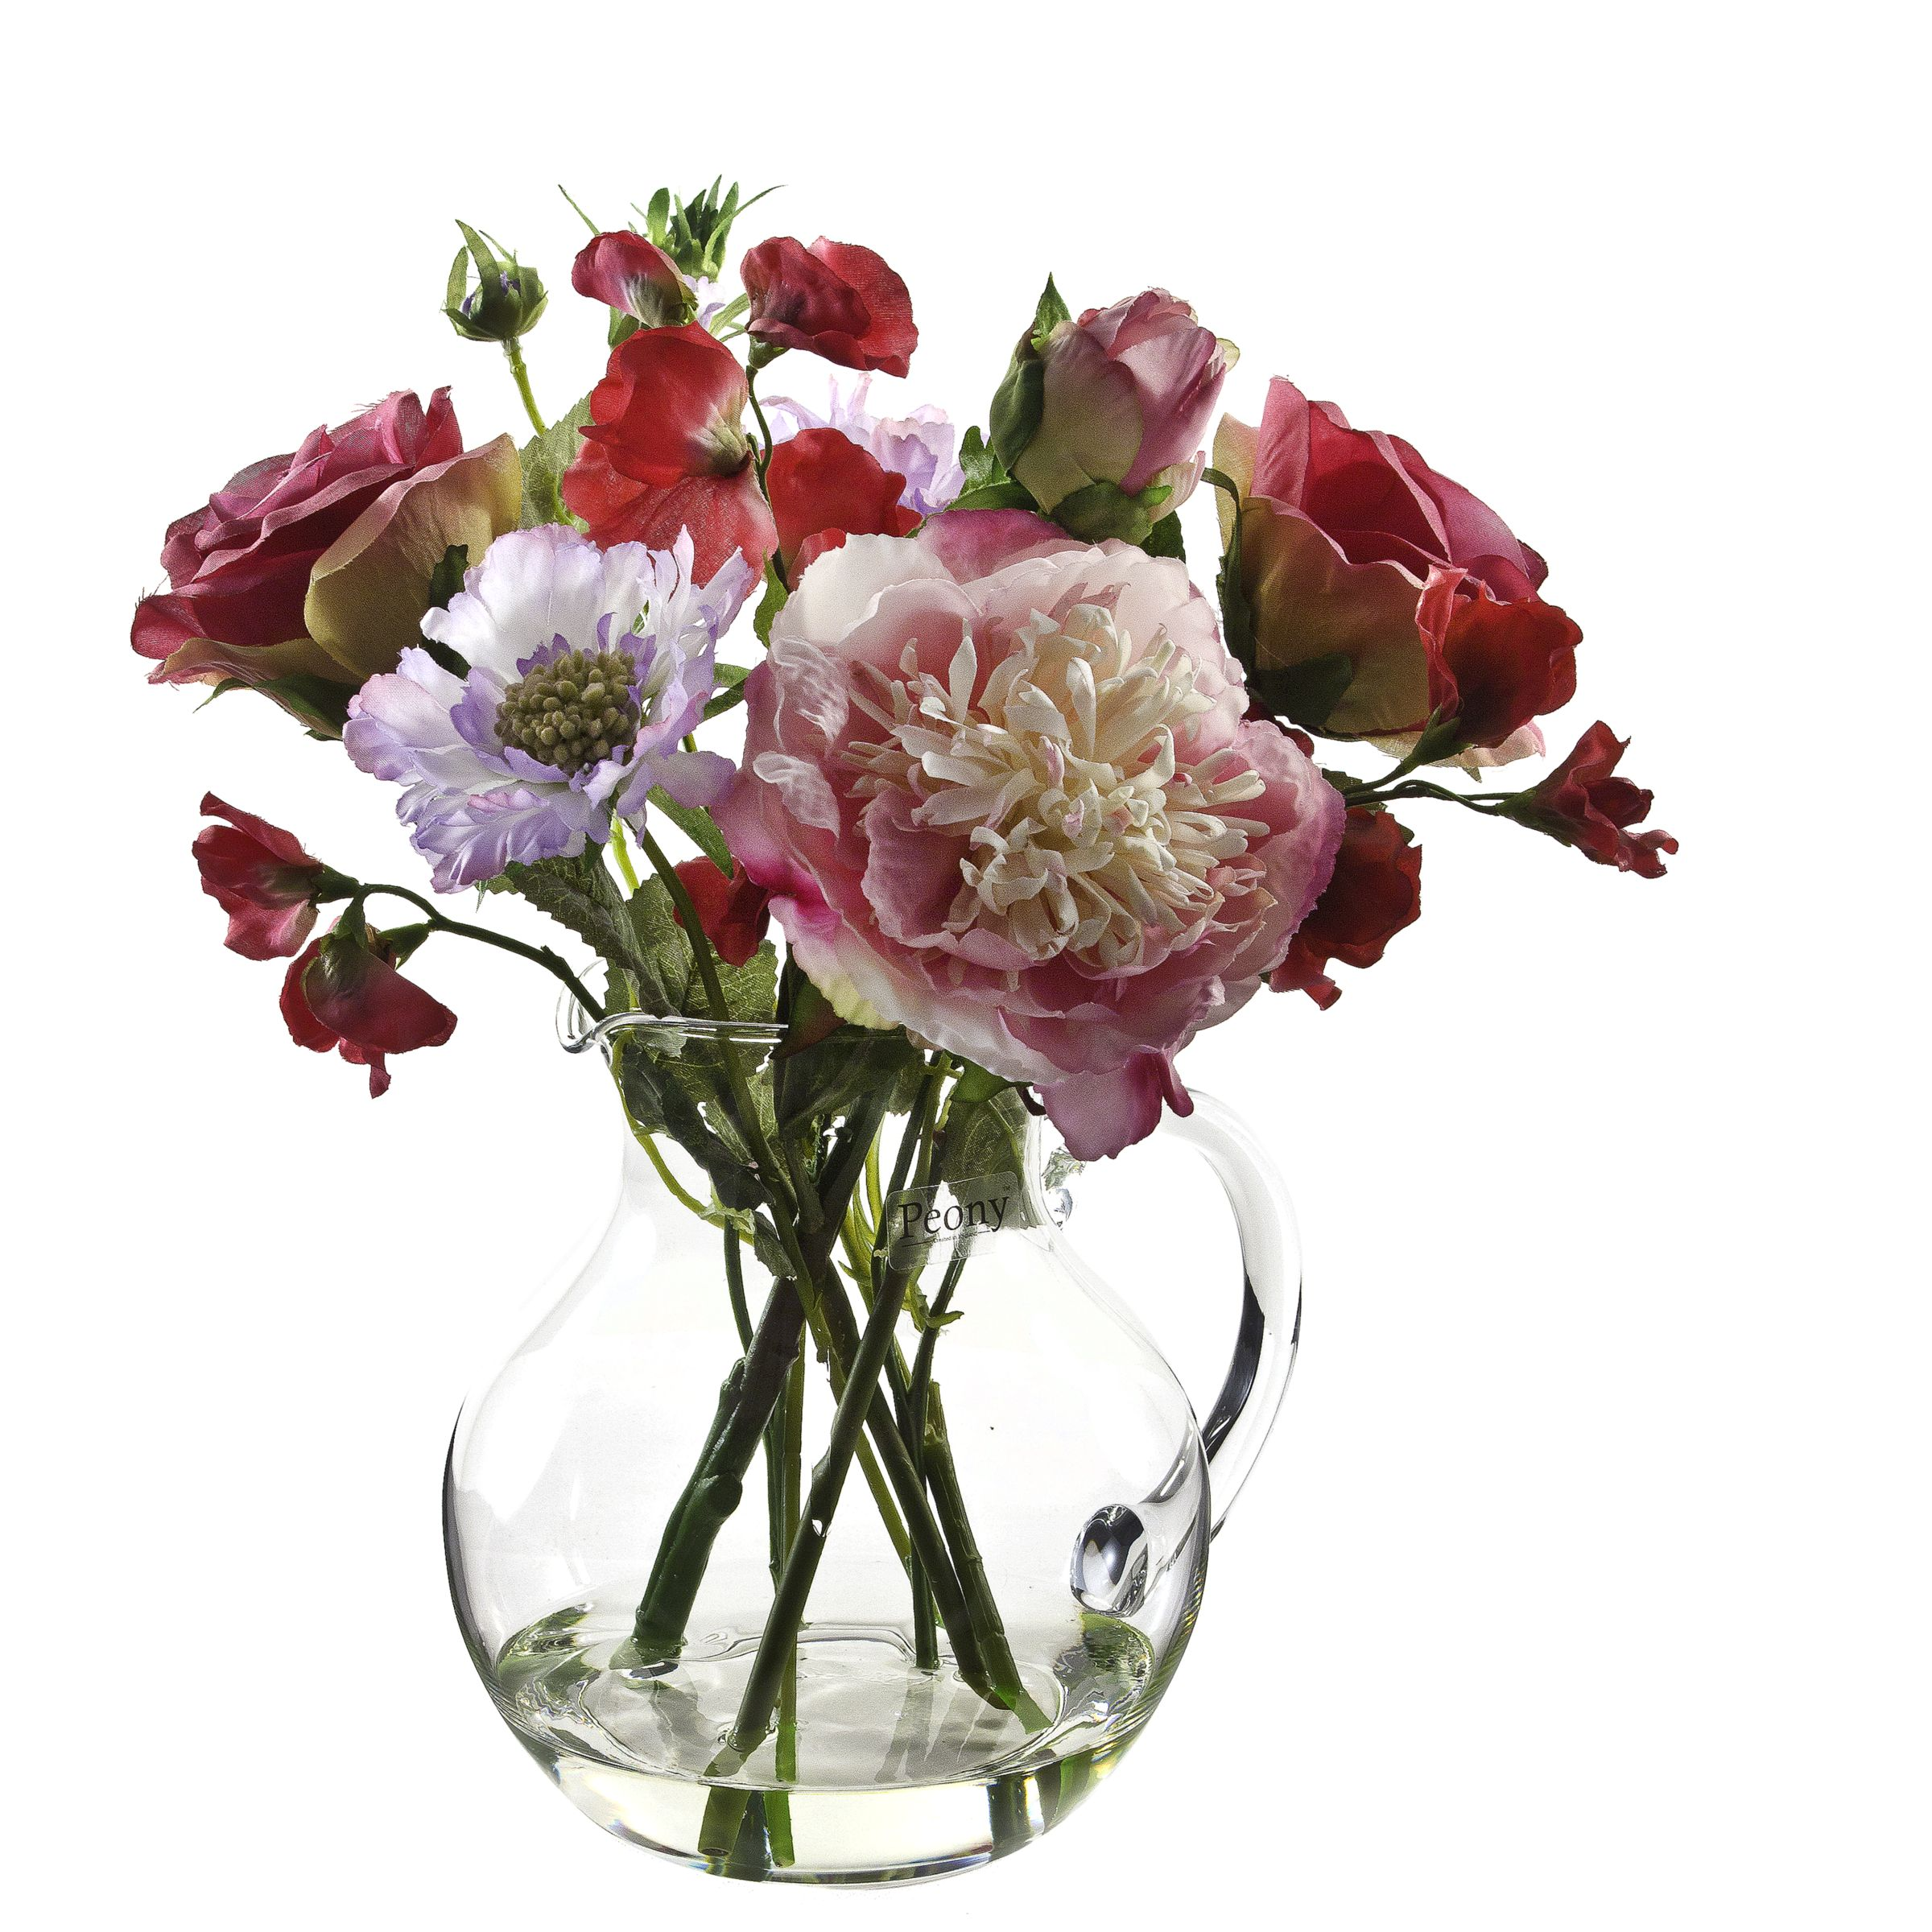 Cottage Garden Flowers in Glass Jug,